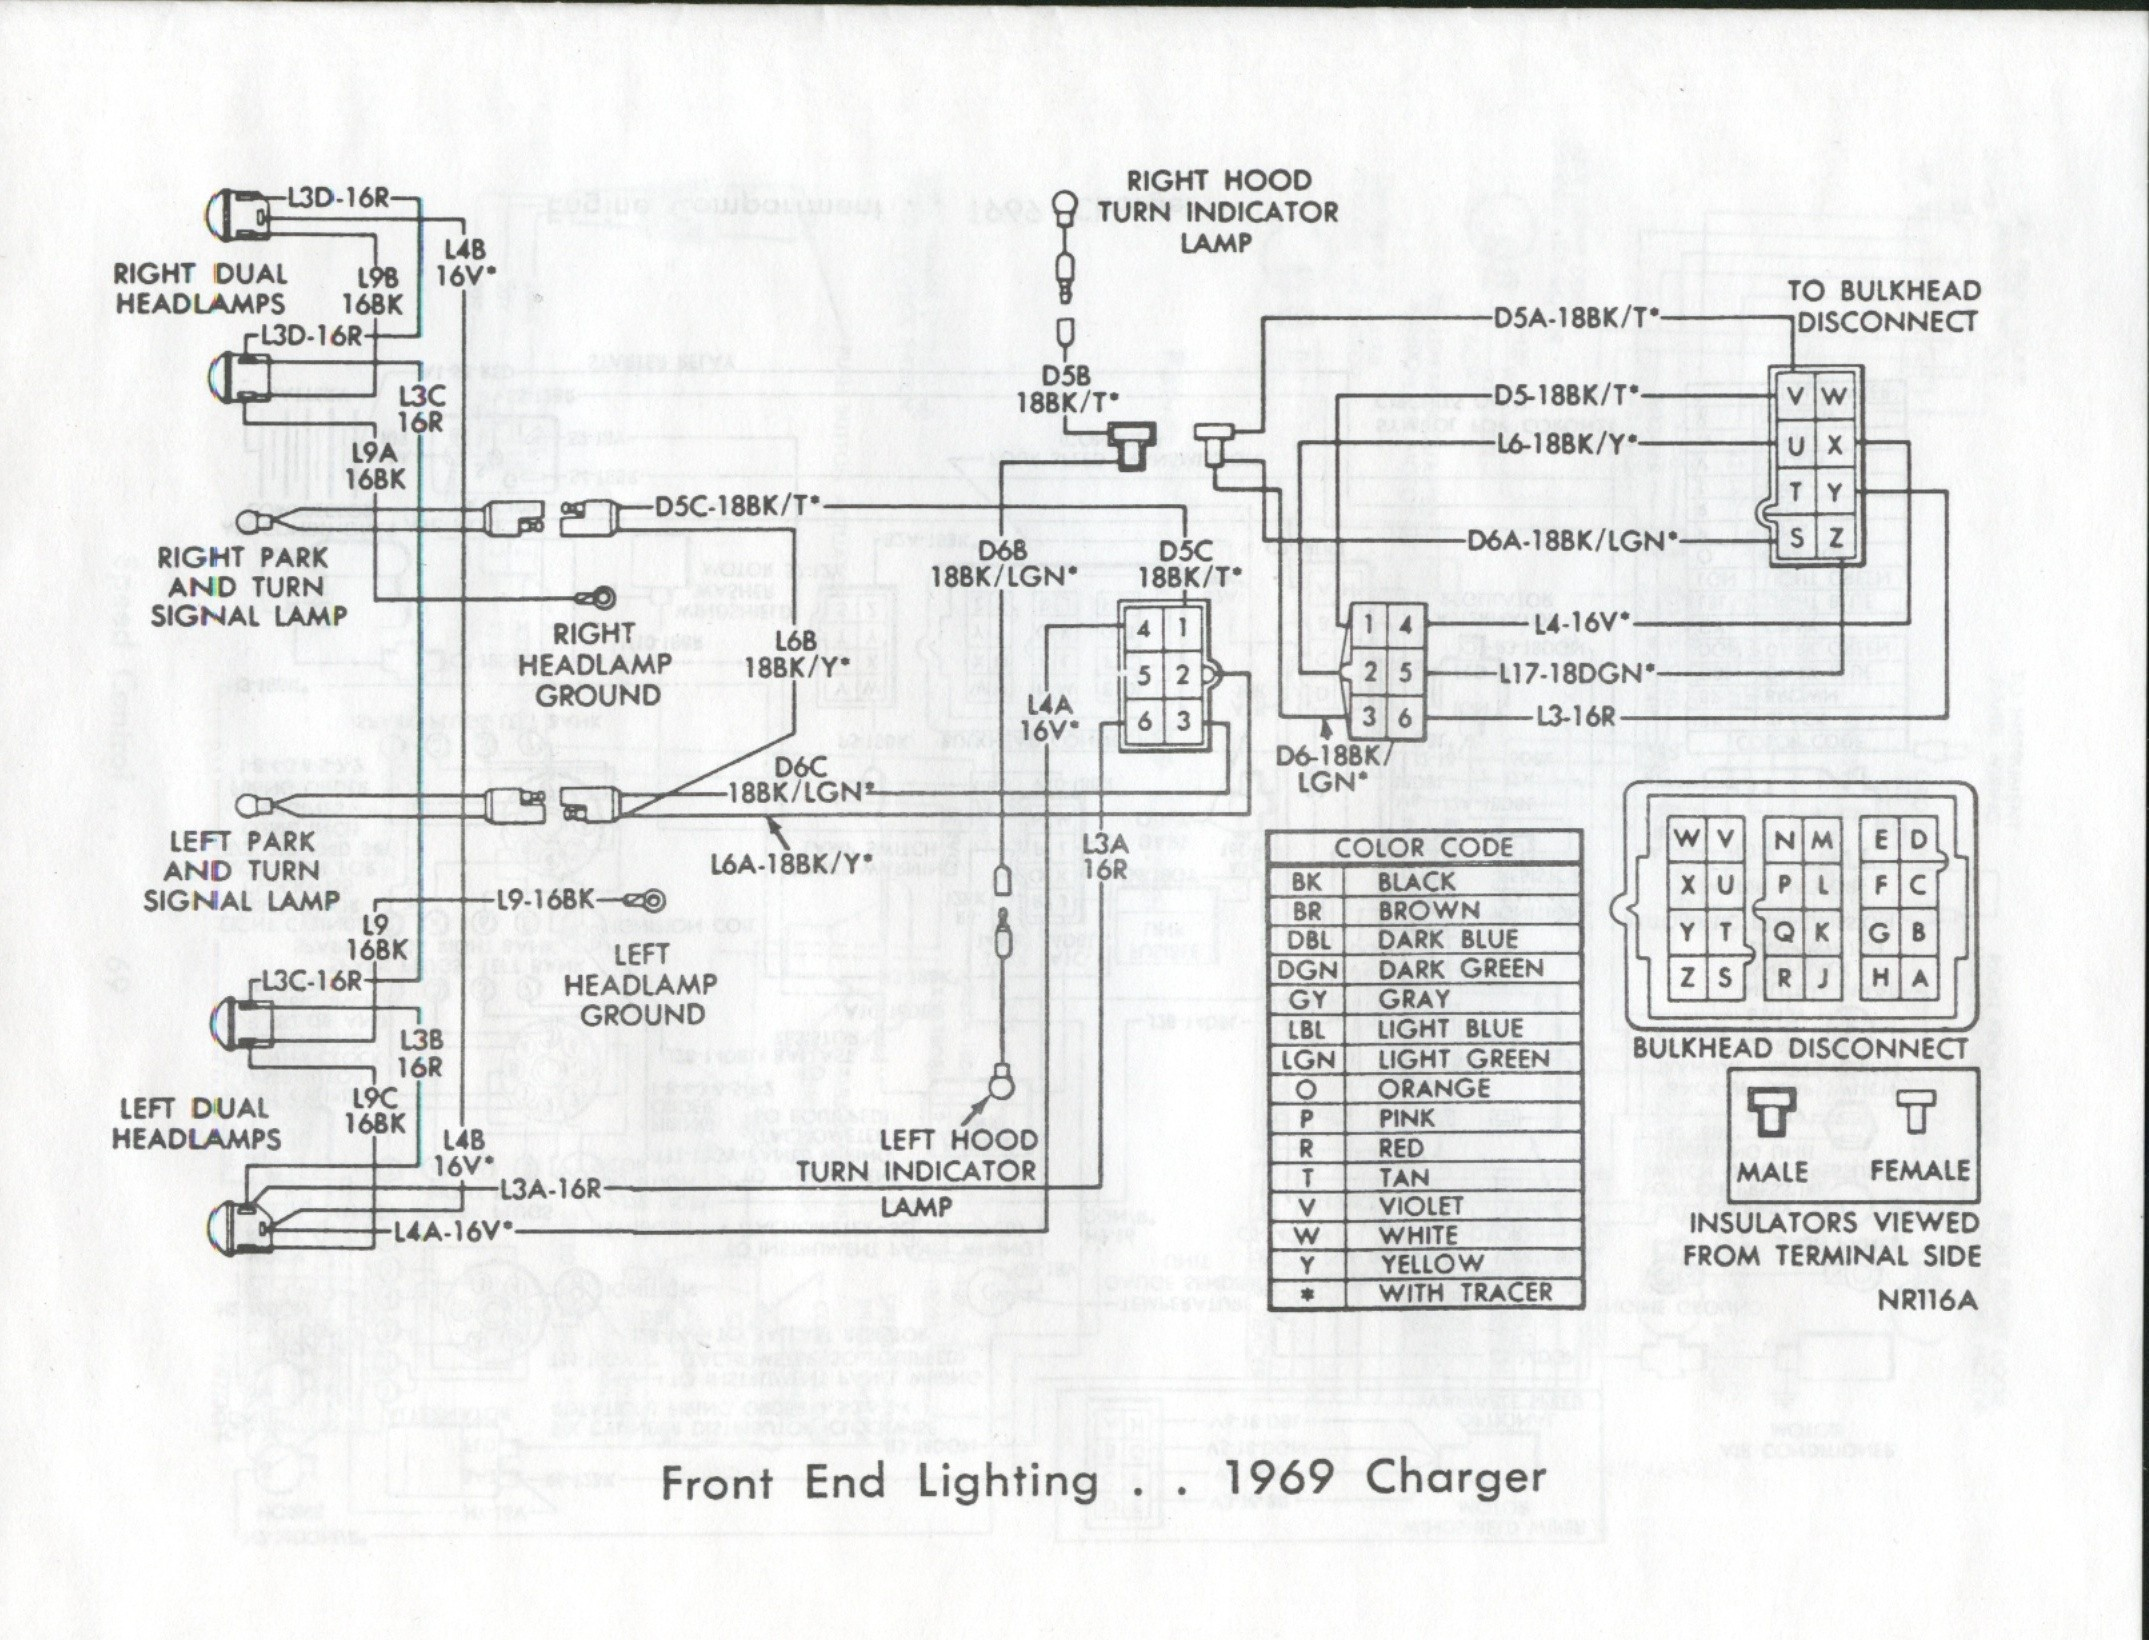 2012 Charger Wiring Diagram 2014 Dodge Charger Wiring